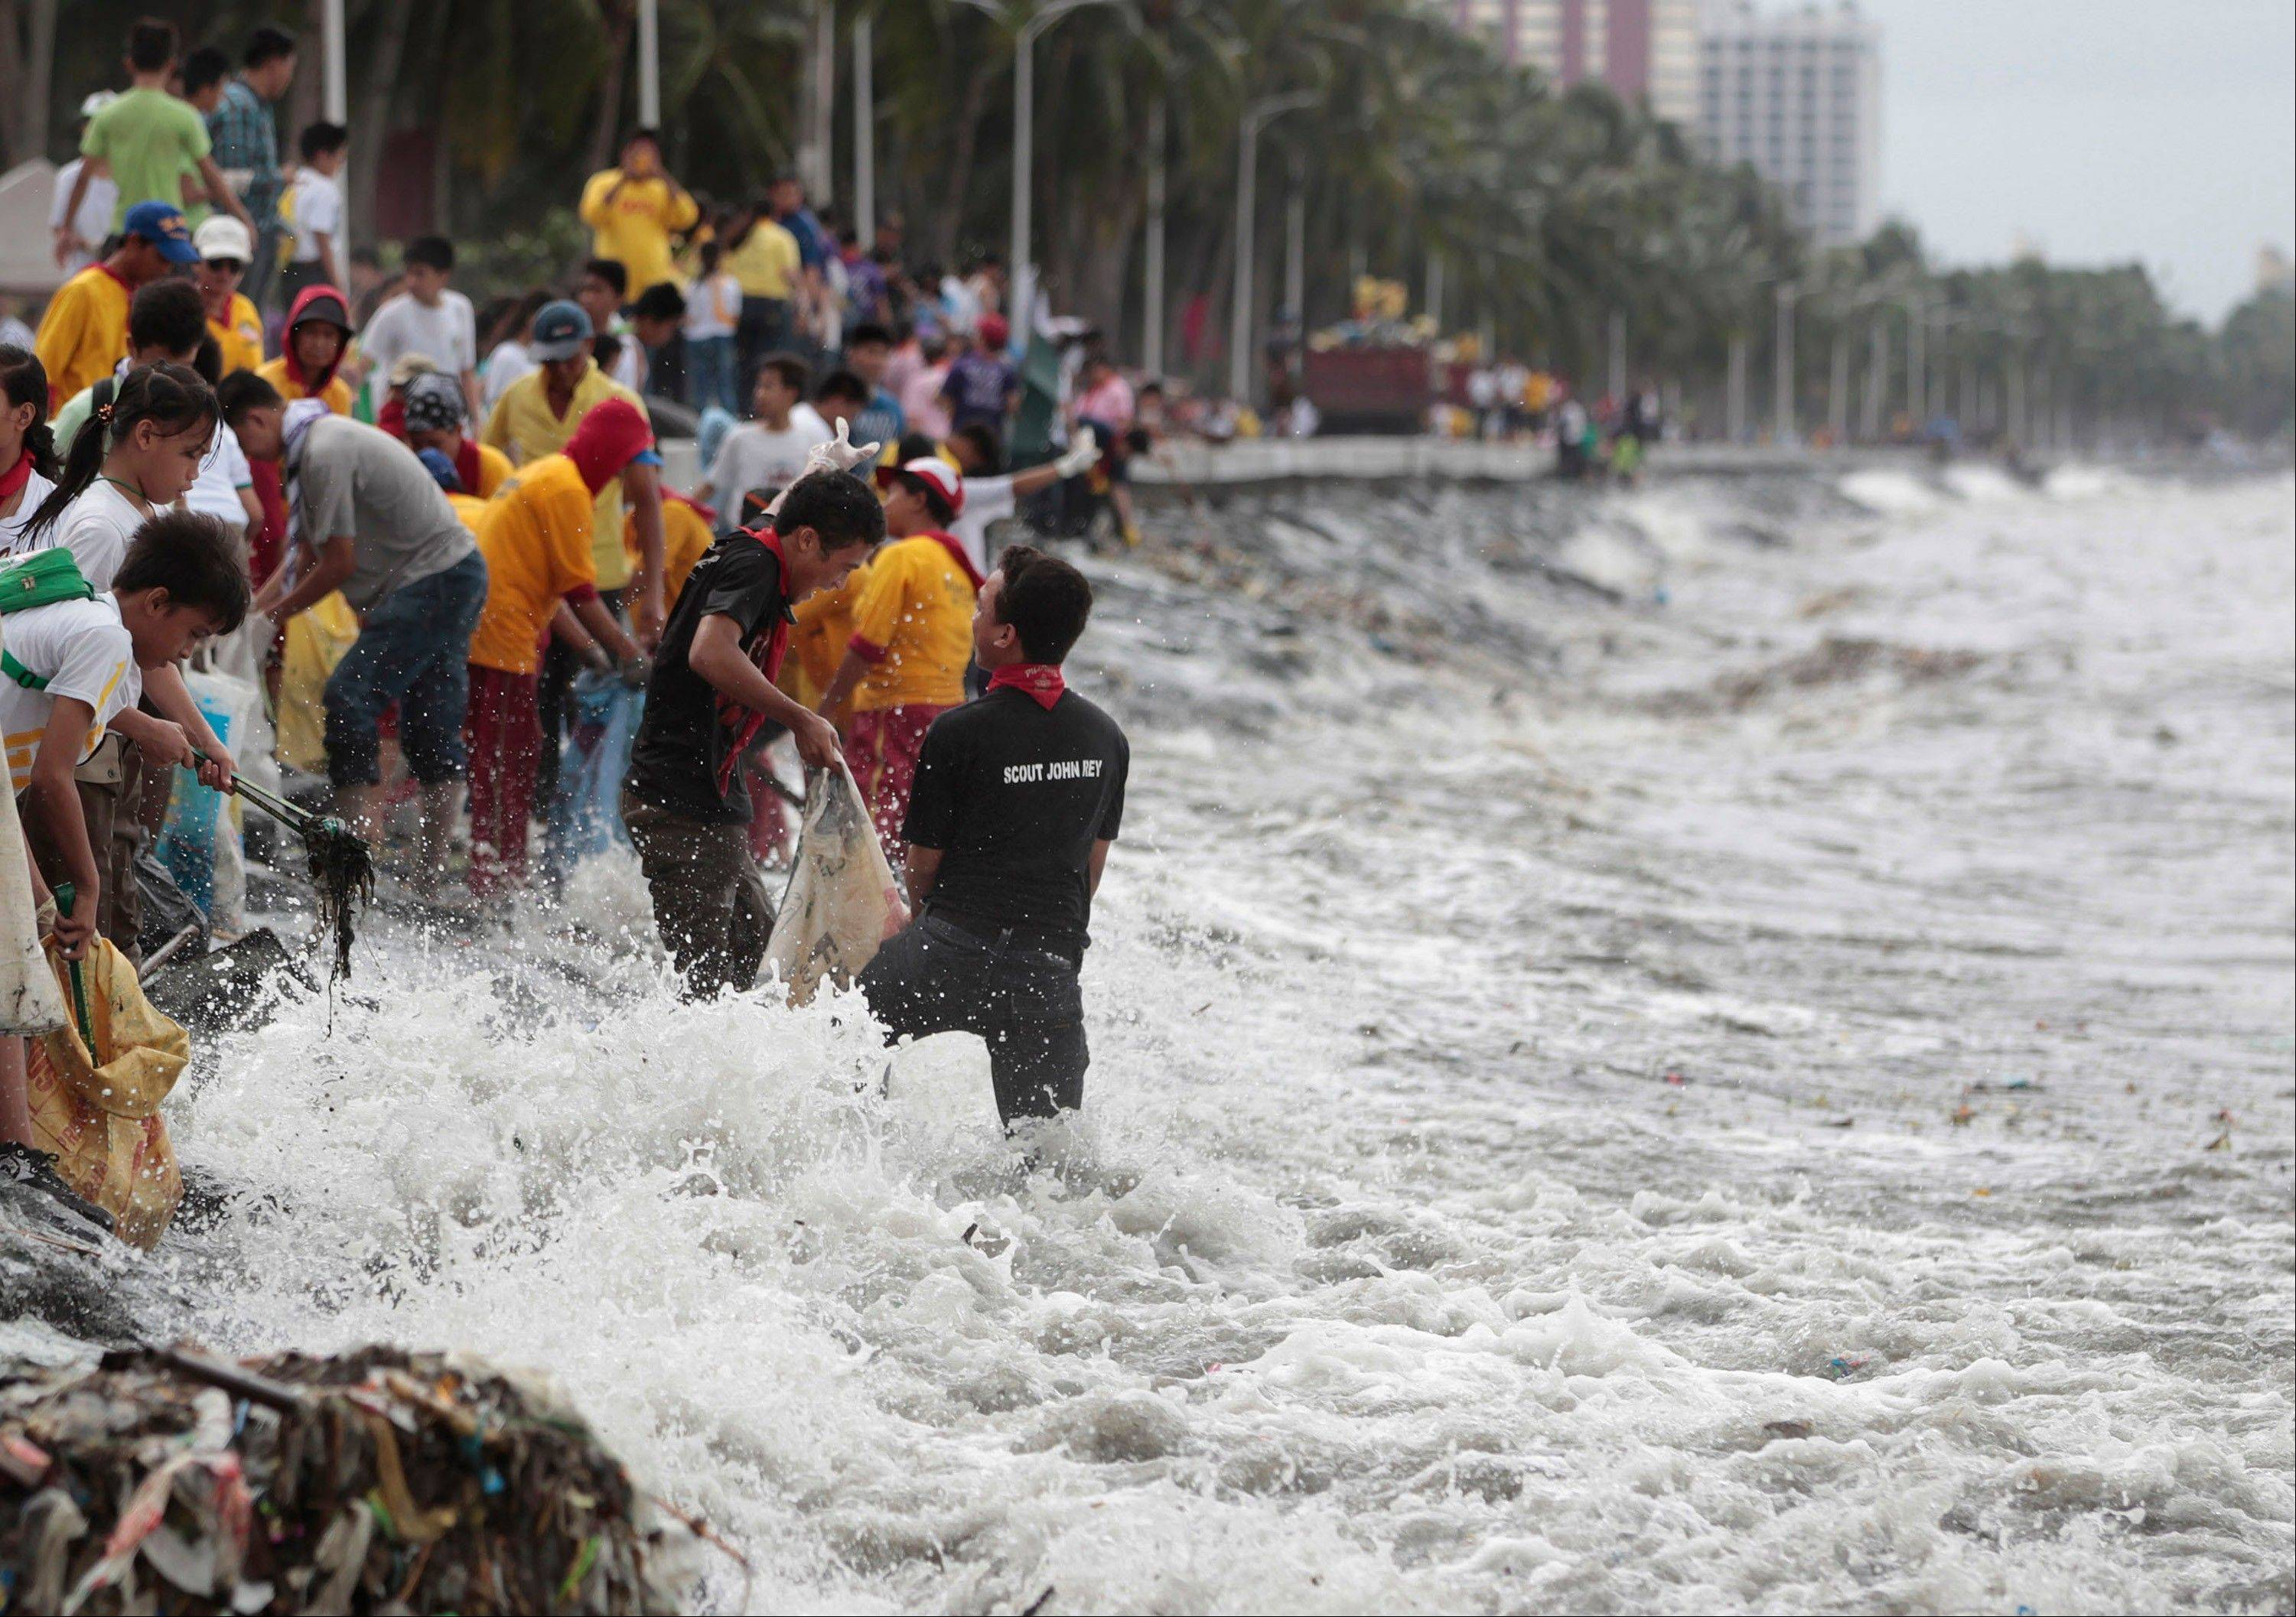 Strong waves hit students and volunteers joining the international coastal cleanup day at the polluted Manila bay, Philippines on Saturday Sept. 21. Usagi, the most powerful typhoon of the year swept through the Luzon Strait separating the Philippines and Taiwan on Saturday, battering island communities and dumping rain as it eyed landfall in Hong Kong.